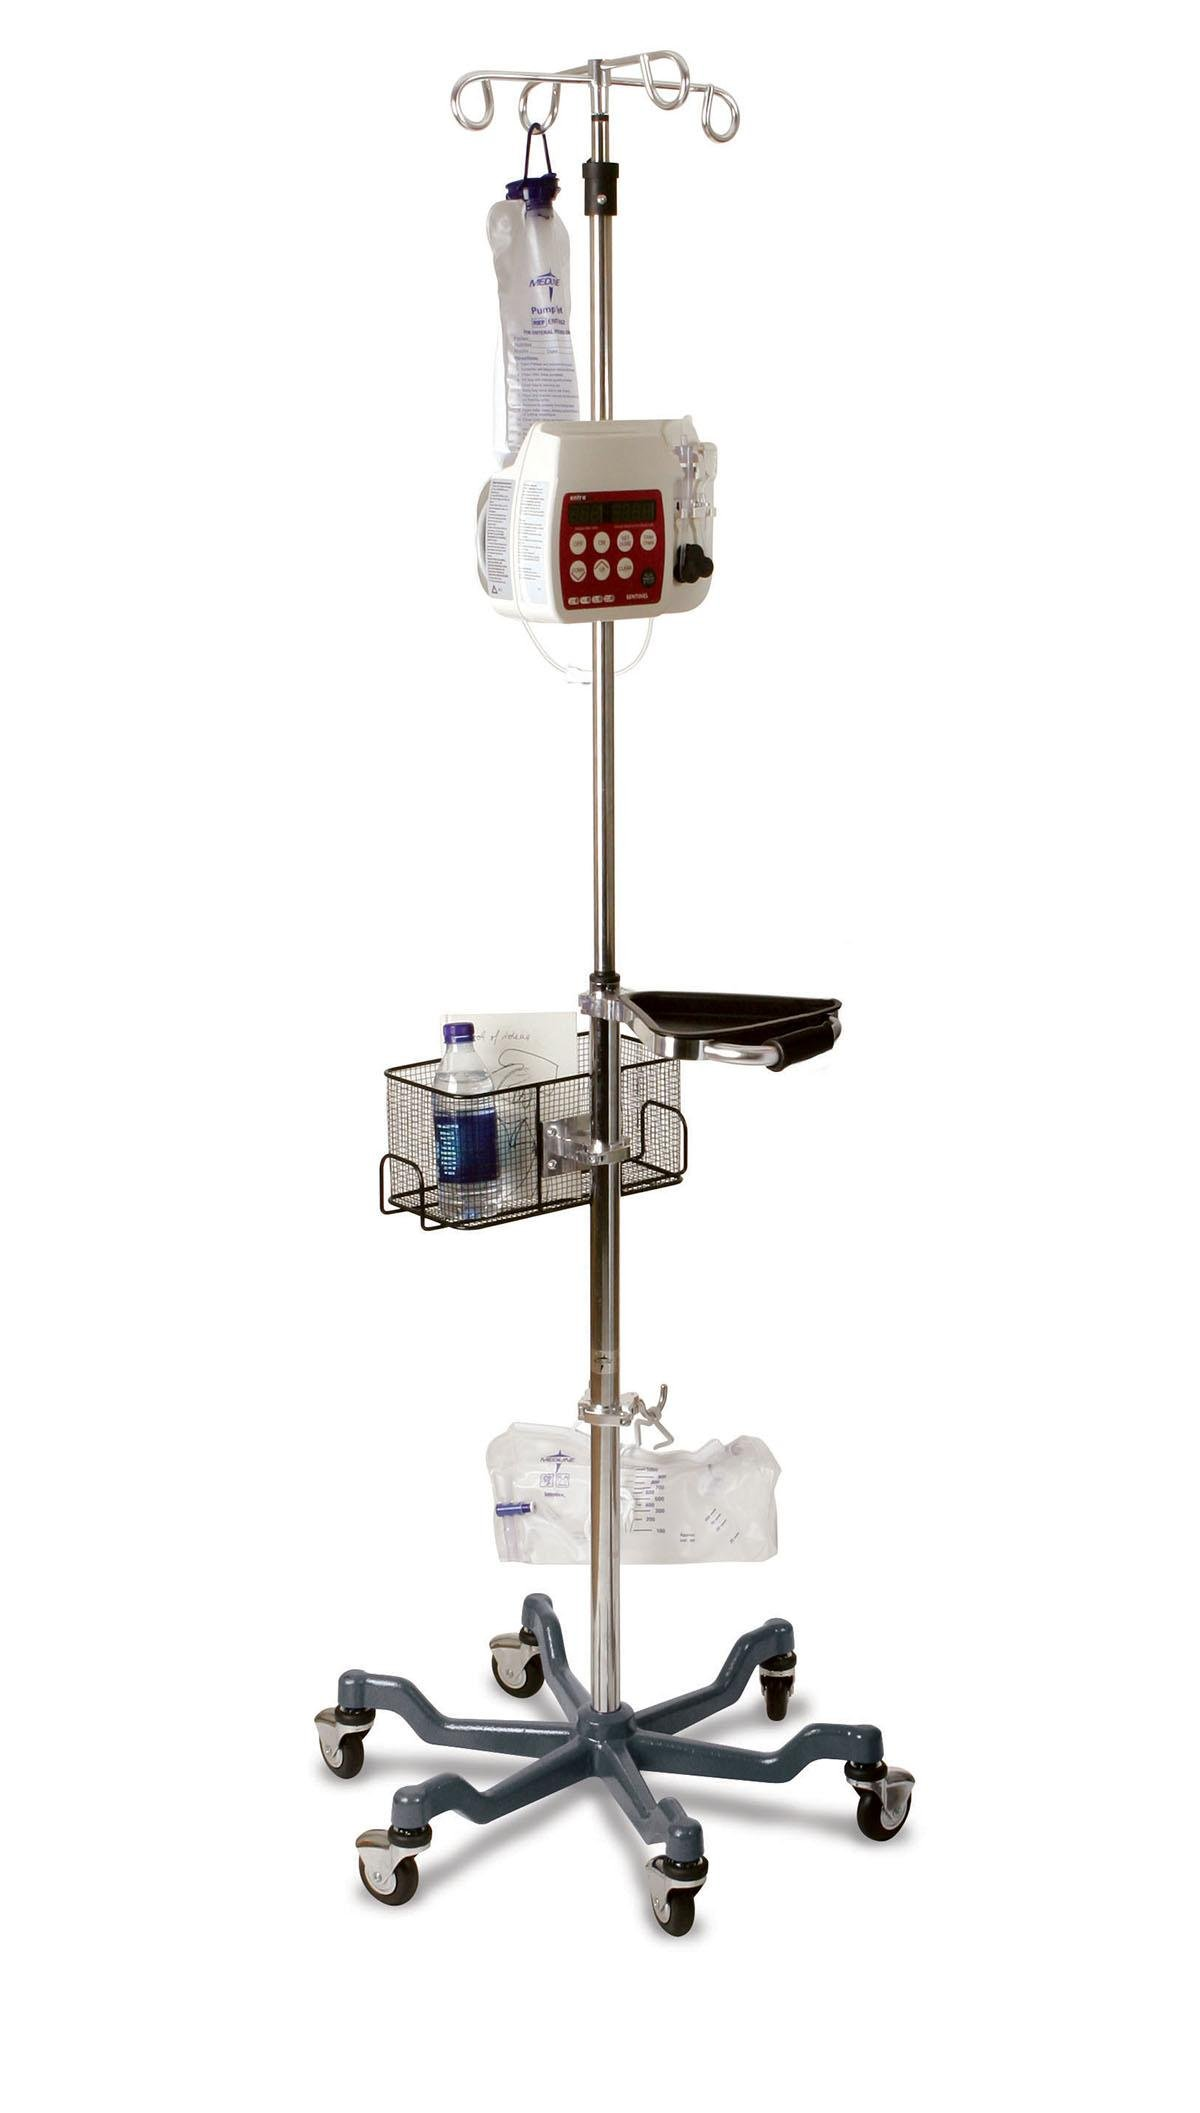 Medline MDS80600GRY Six Leg Heavy Duty IV Pole Stand with Quick Release Caster, Stainless Steel, Latex Free, Gray Base (Pack of 2)